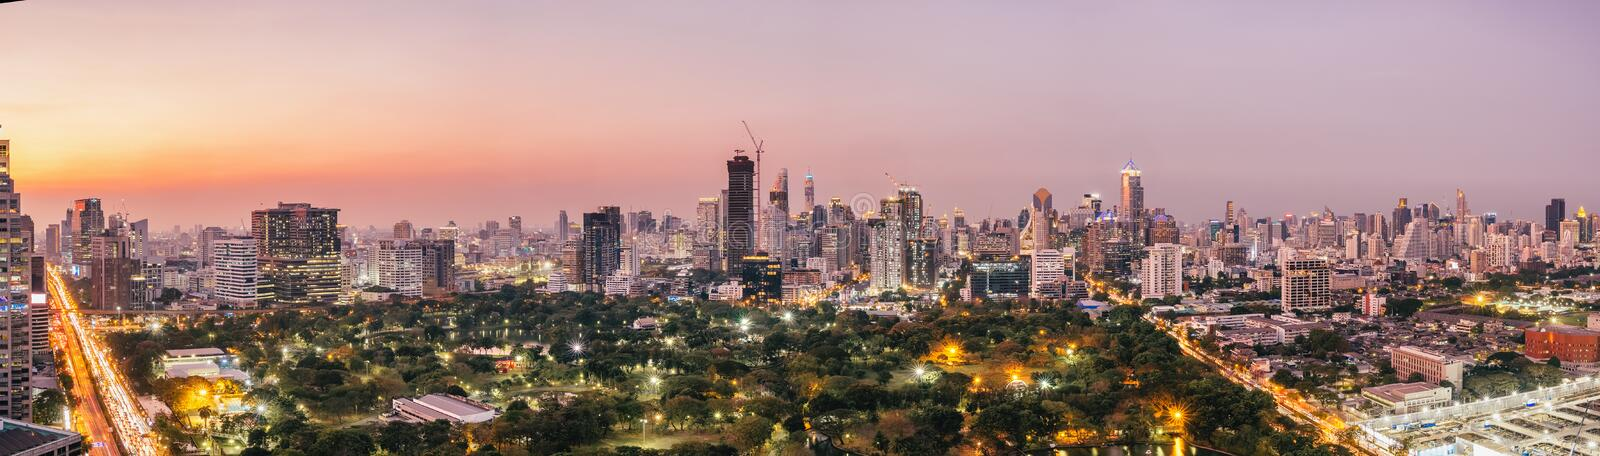 Panorama of Bangkok City skyline with urban skyscrapers at sunset stock images